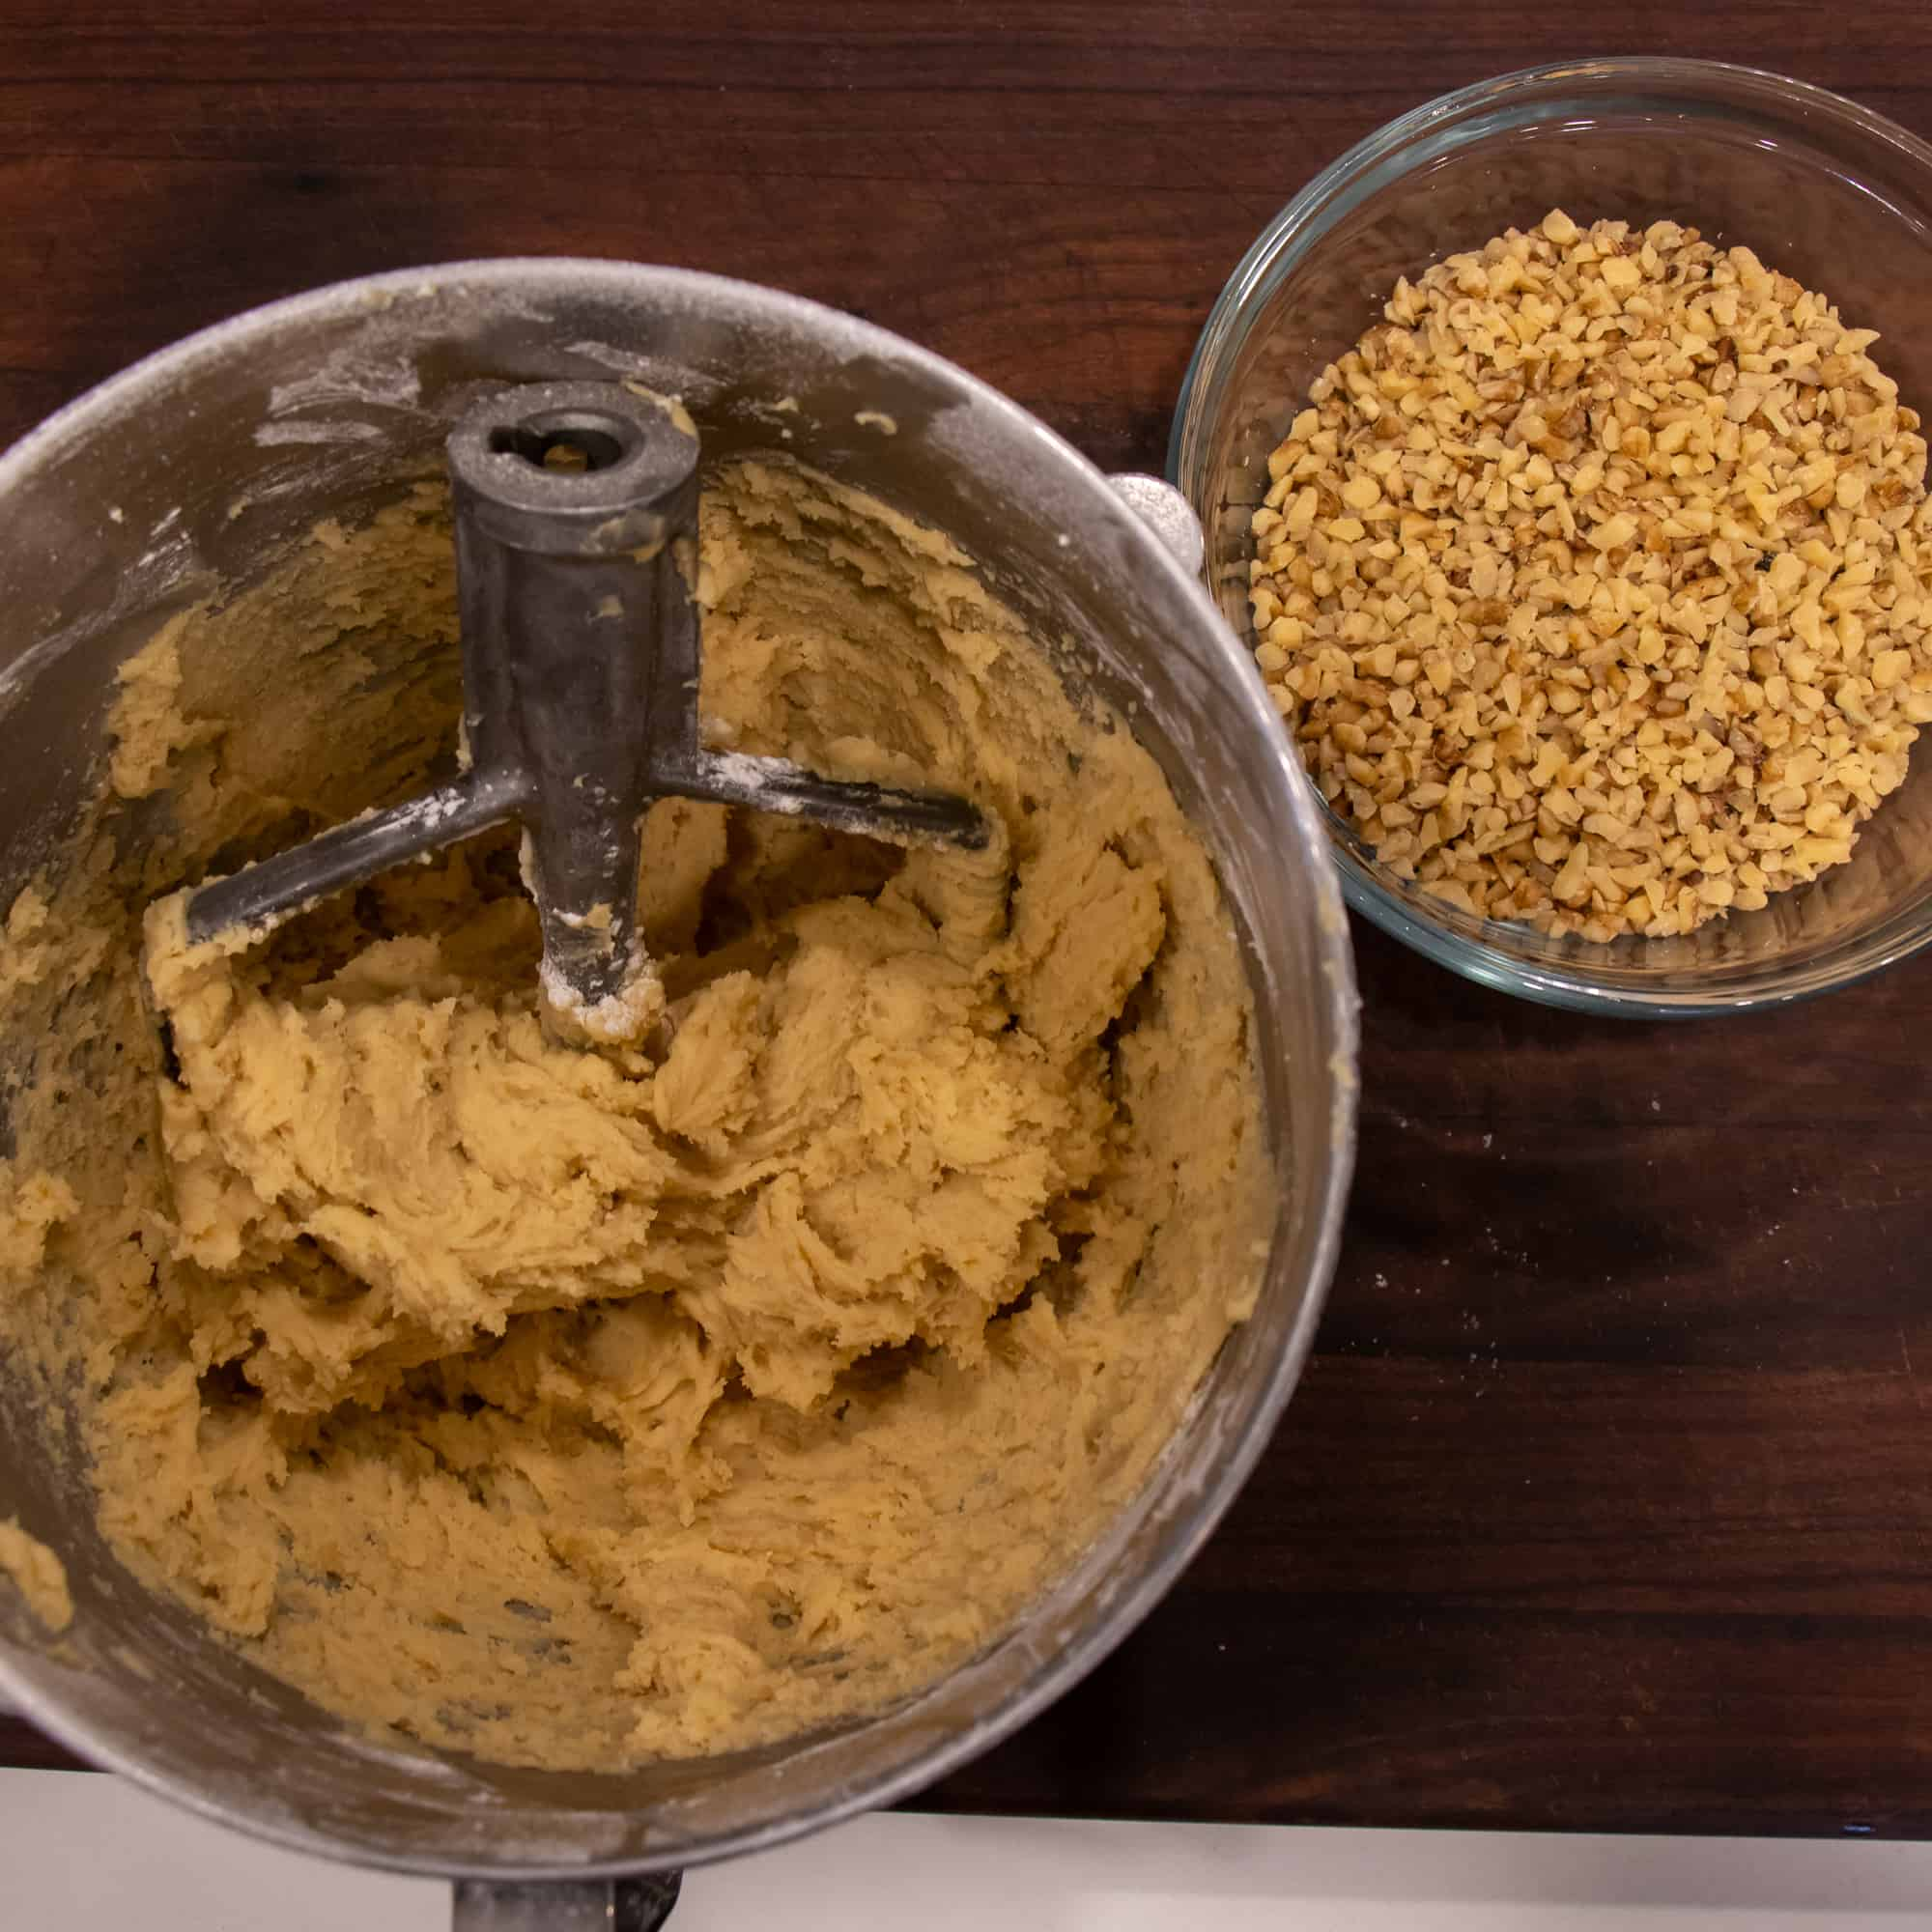 Make the dough with an electric mixer and have it ready along with a bowl of chopped walnuts.